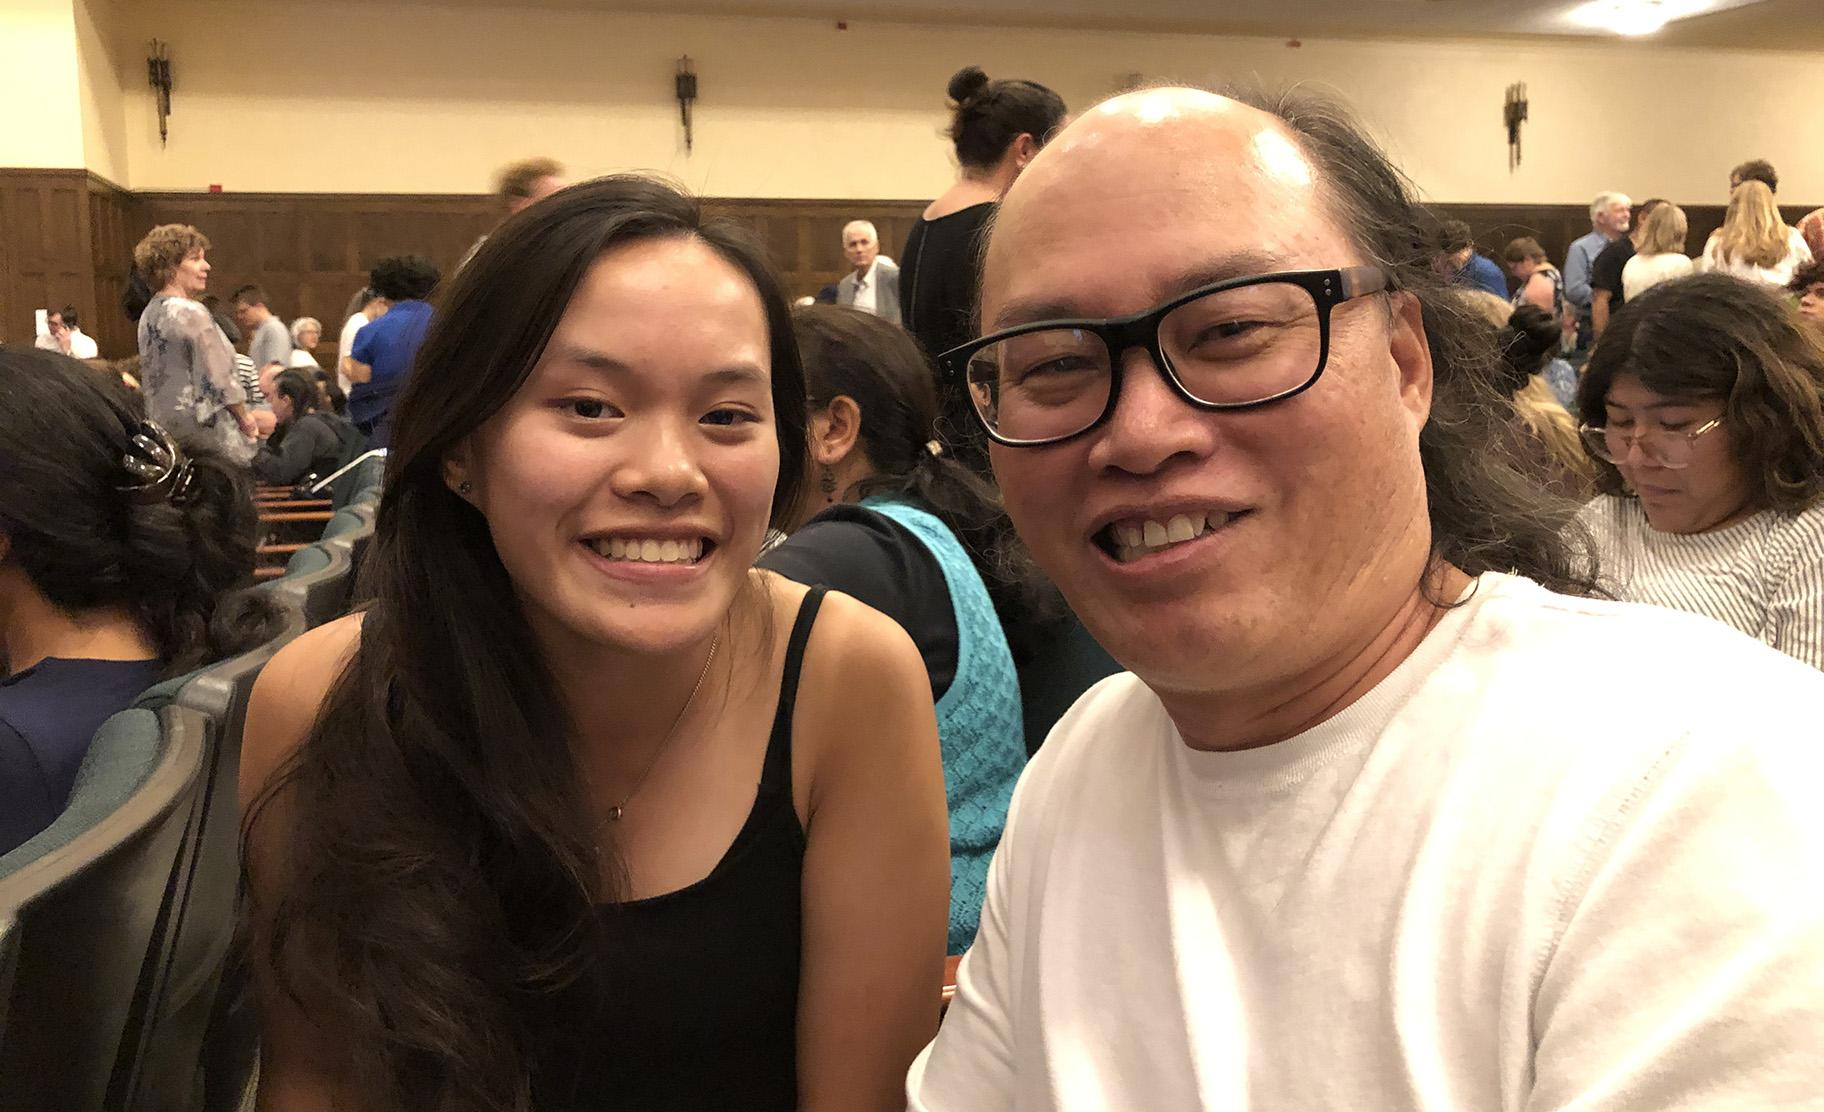 Noel Feller, a student at Lane Tech High School who studies cello, attended Tuesday night's concert by the Chicago Symphony Orchestra along with her father, Van Feller. (Photo by Hedy Weiss)